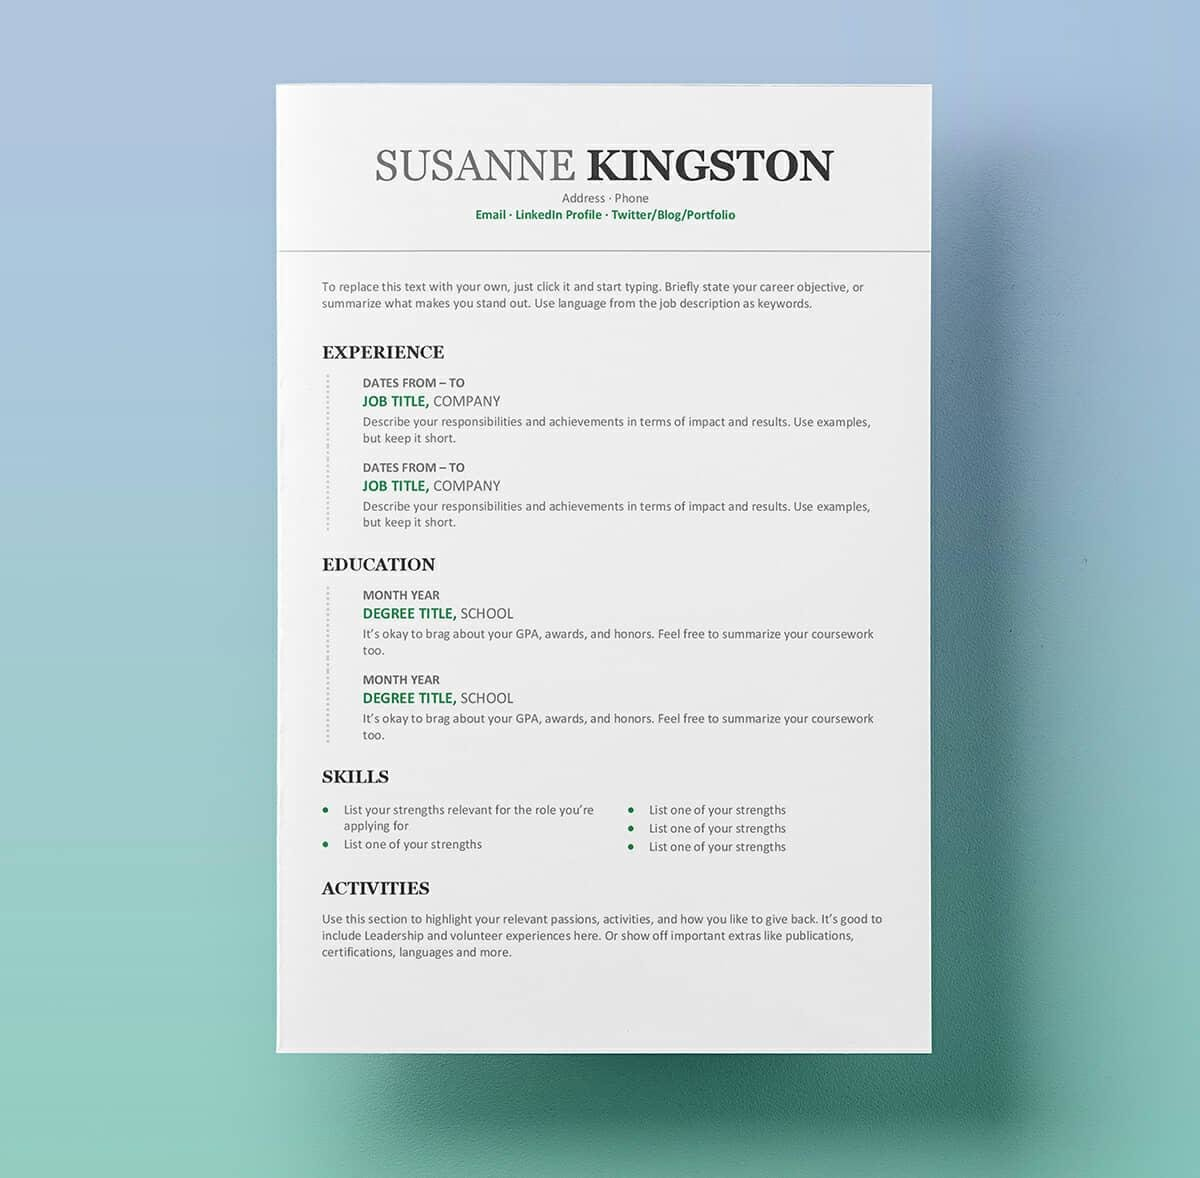 resume templates for microsoft word free template modern legal assistant sample bootstrap Resume Resume Template Modern Free Download